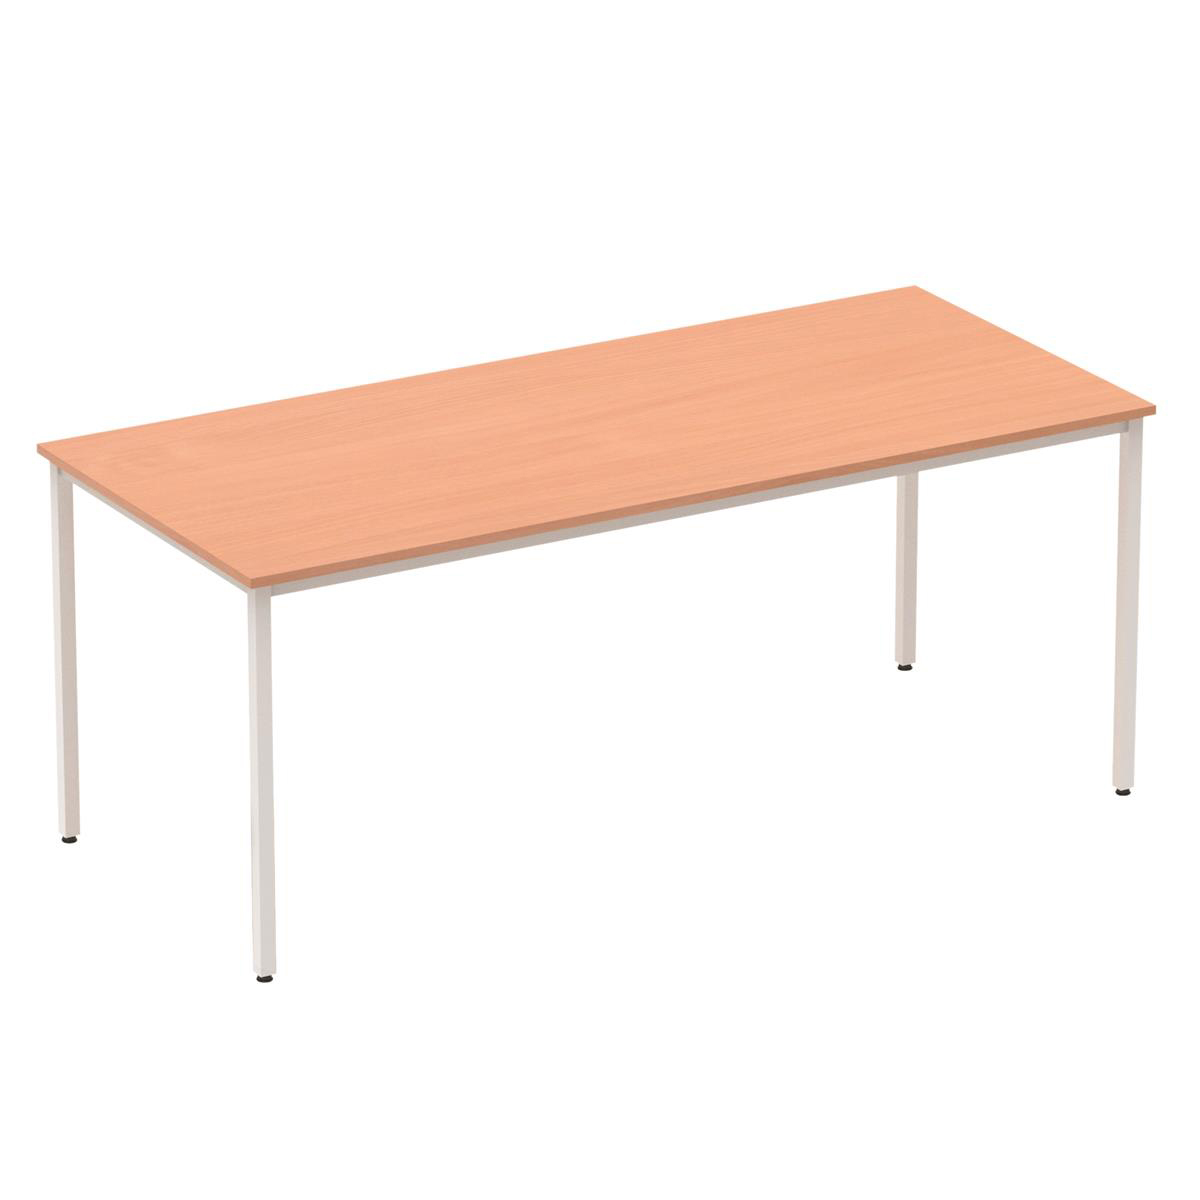 Image for &Trexus Table 1800mm Bch/Slv